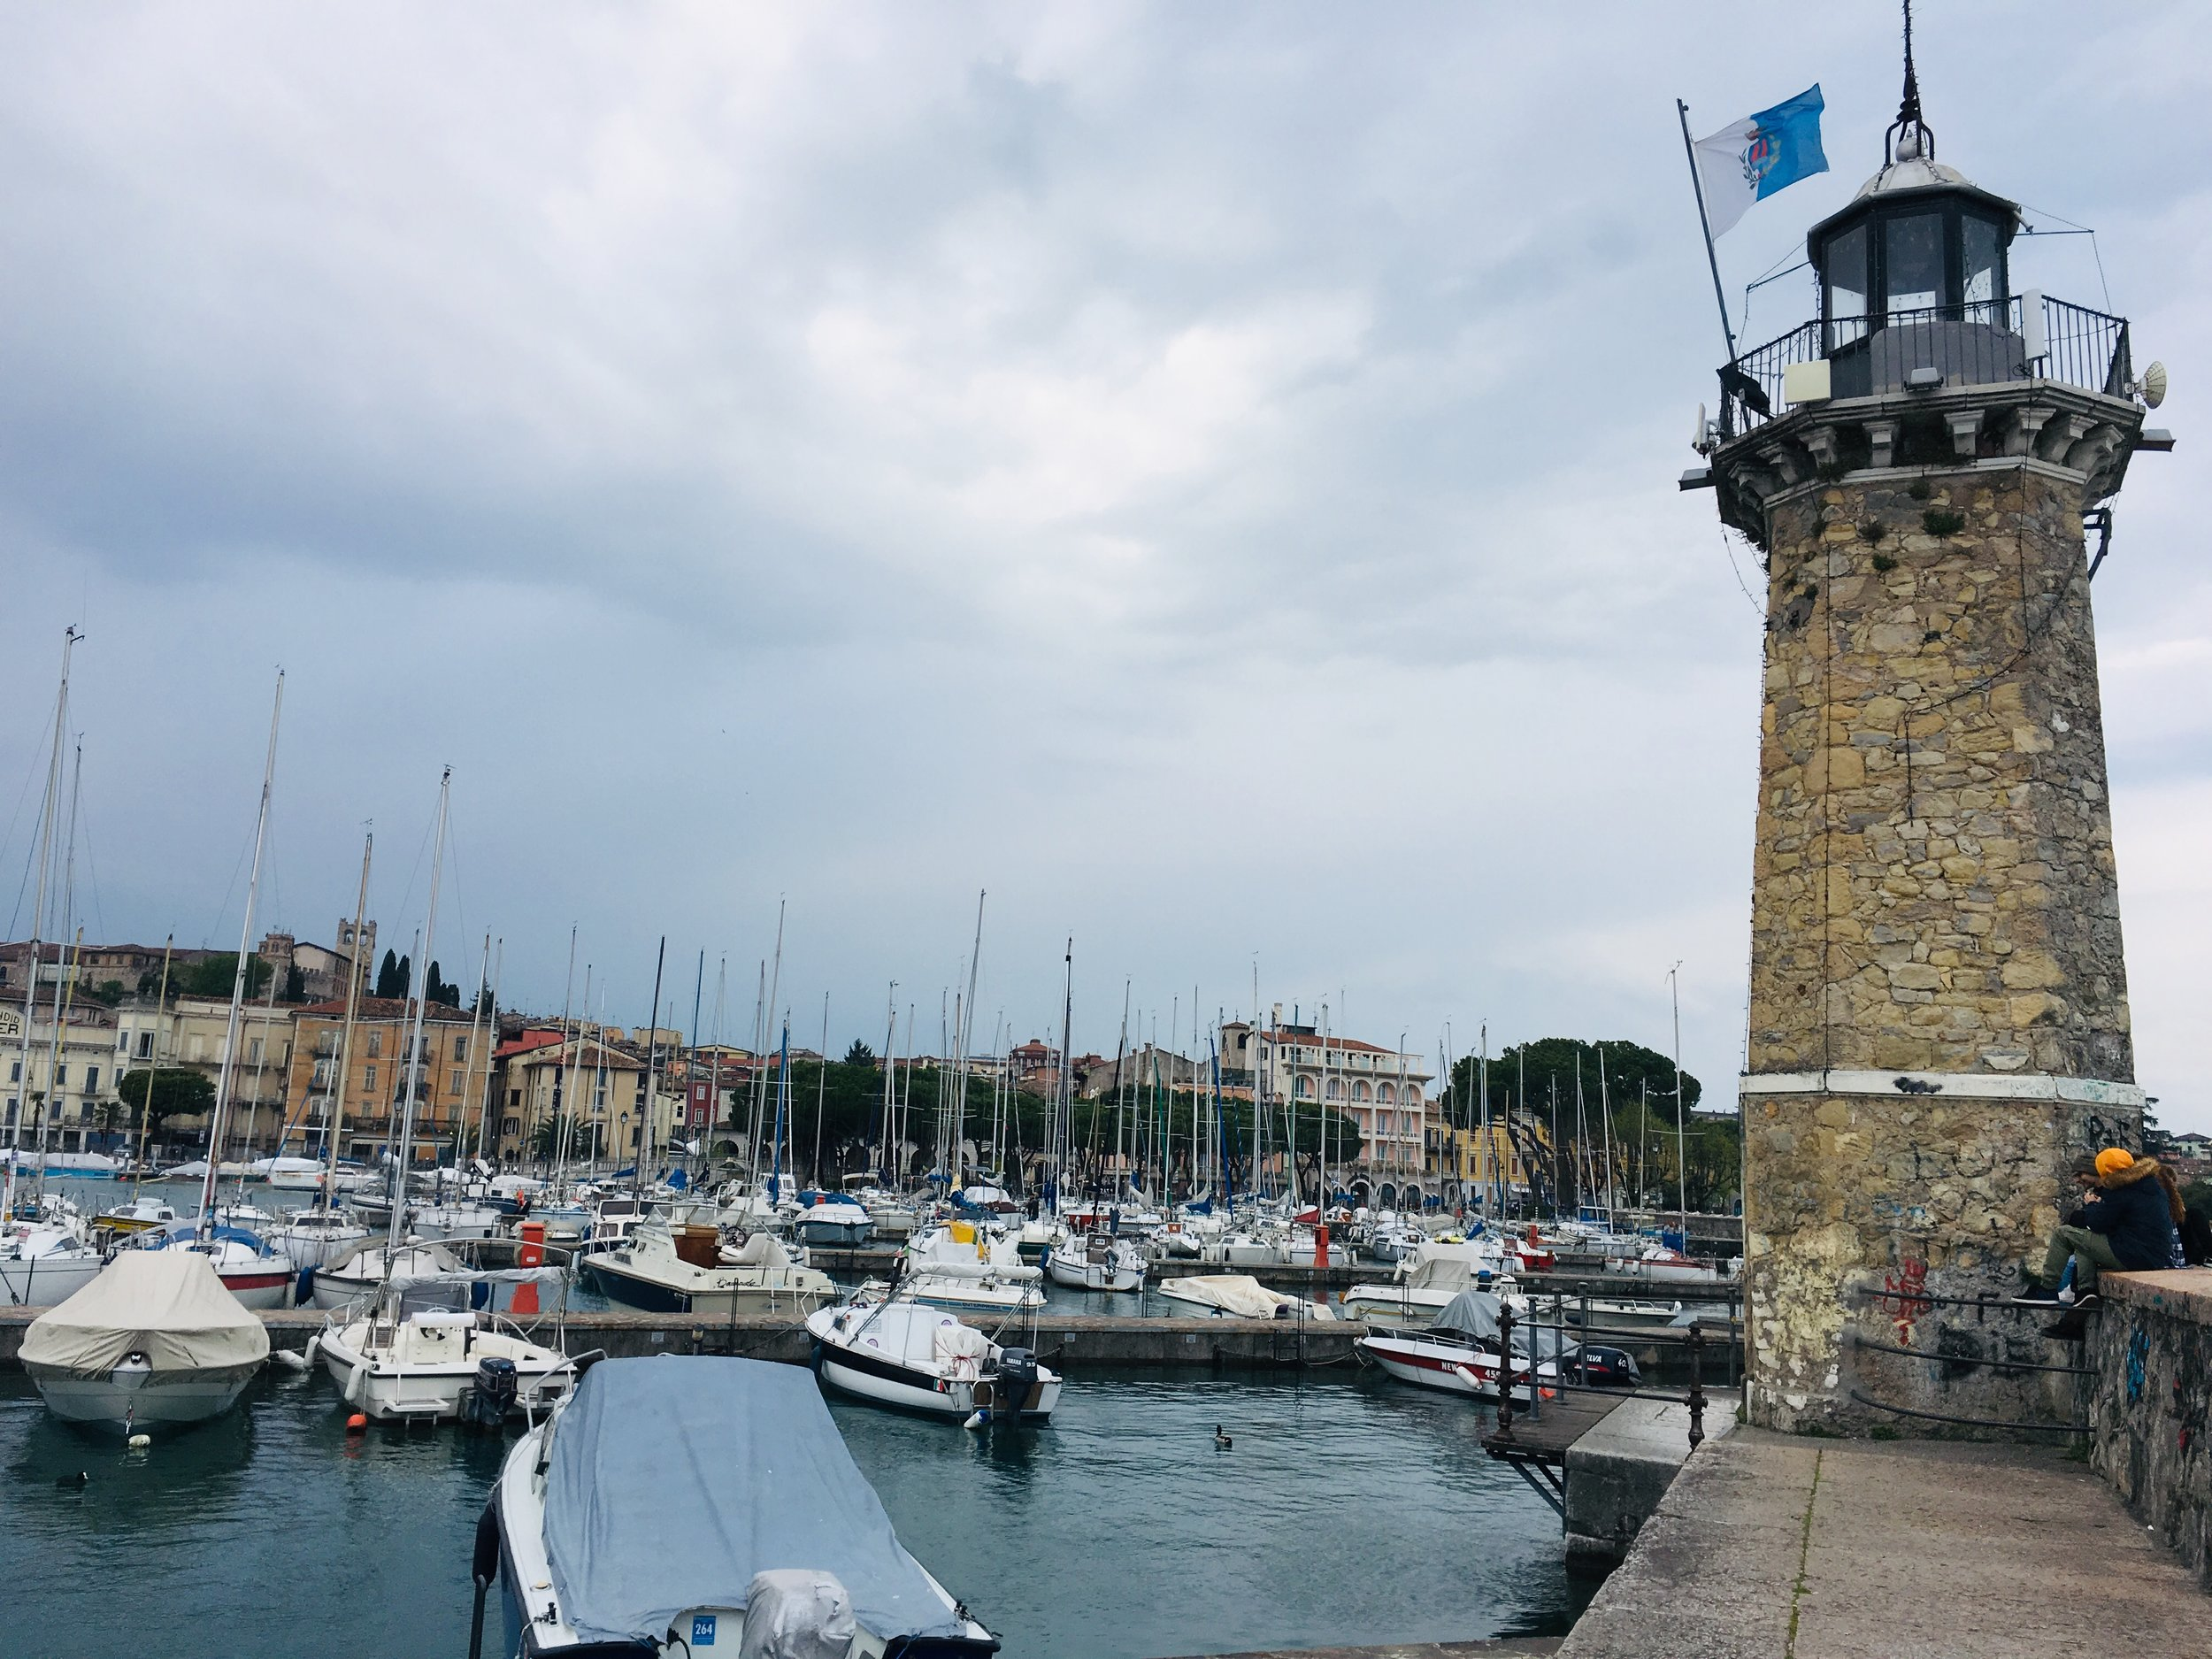 The jetty at Desenzano